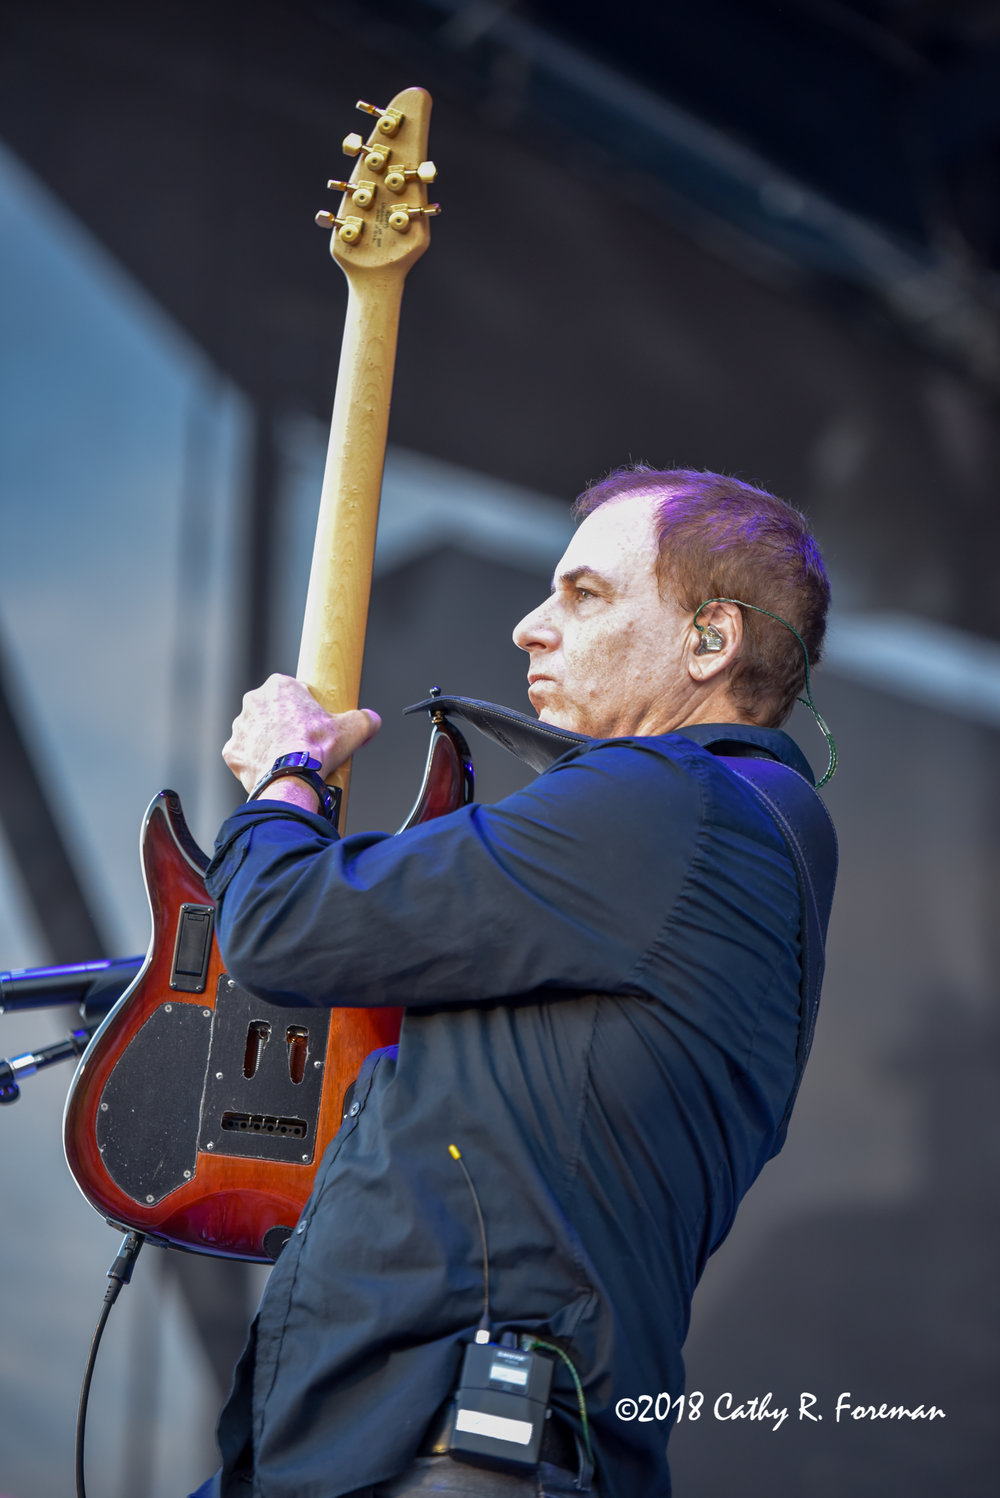 The Rippingtons at 2018 Queen City Jazz Festival by Cathy R. Foreman